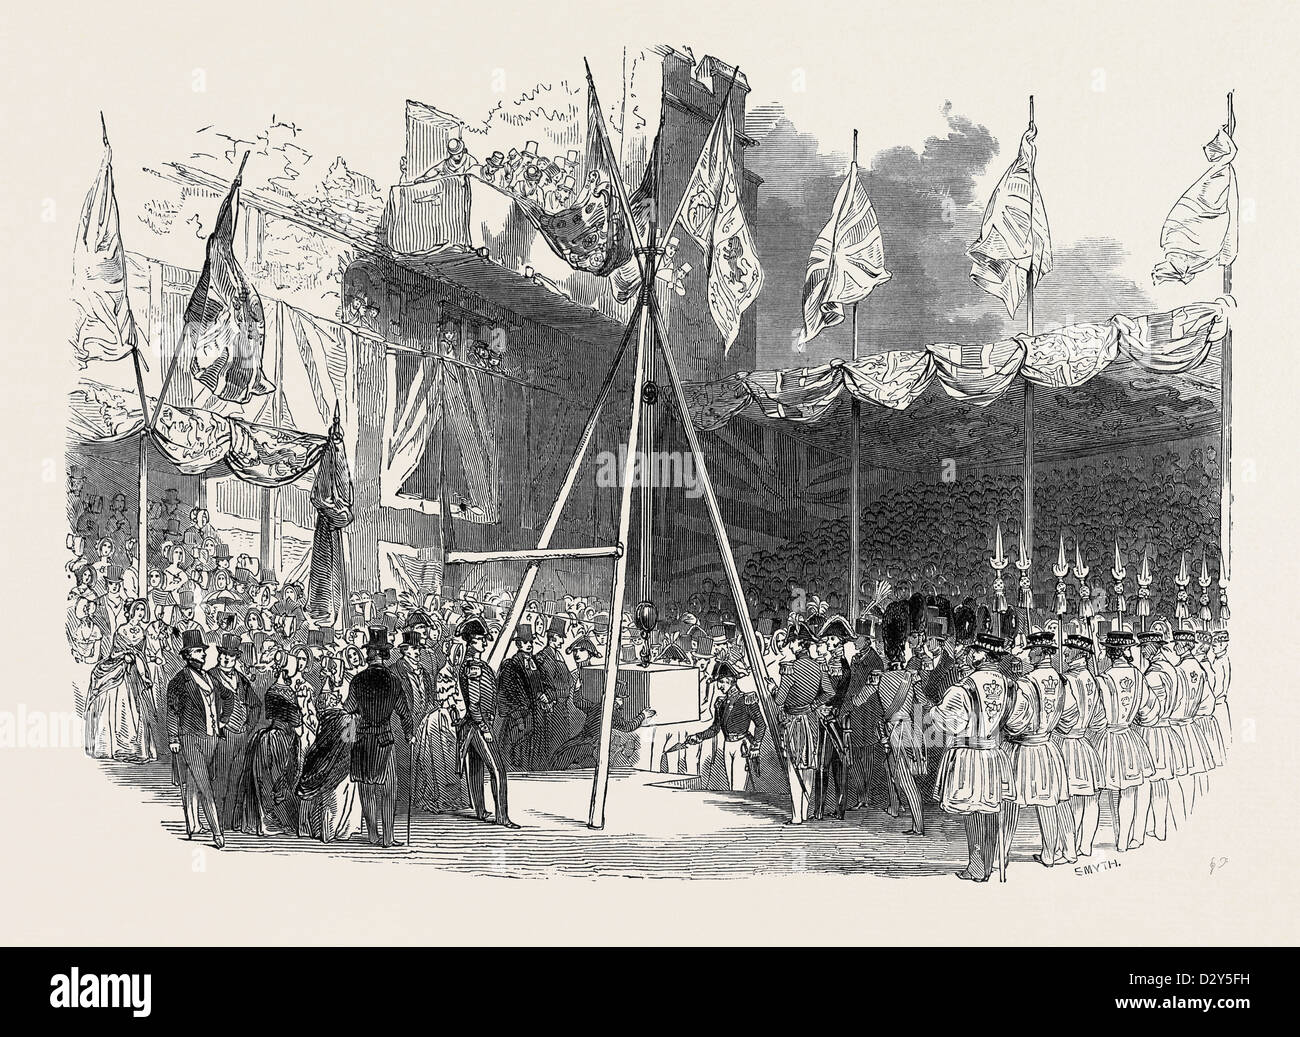 THE DUKE OF WELLINGTON LAYING THE FIRST STONE OF THE WATERLOO BARRACKS, AT THE TOWER OF LONDON, GREAT BRITAIN - Stock Image